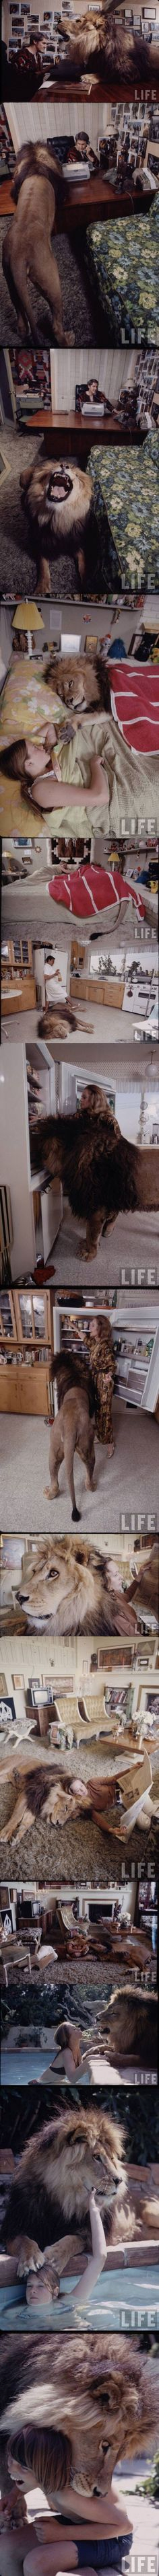 and then he bit their faces off, because keeping a lion in your house is a really terrible idea. but it looks awesome.